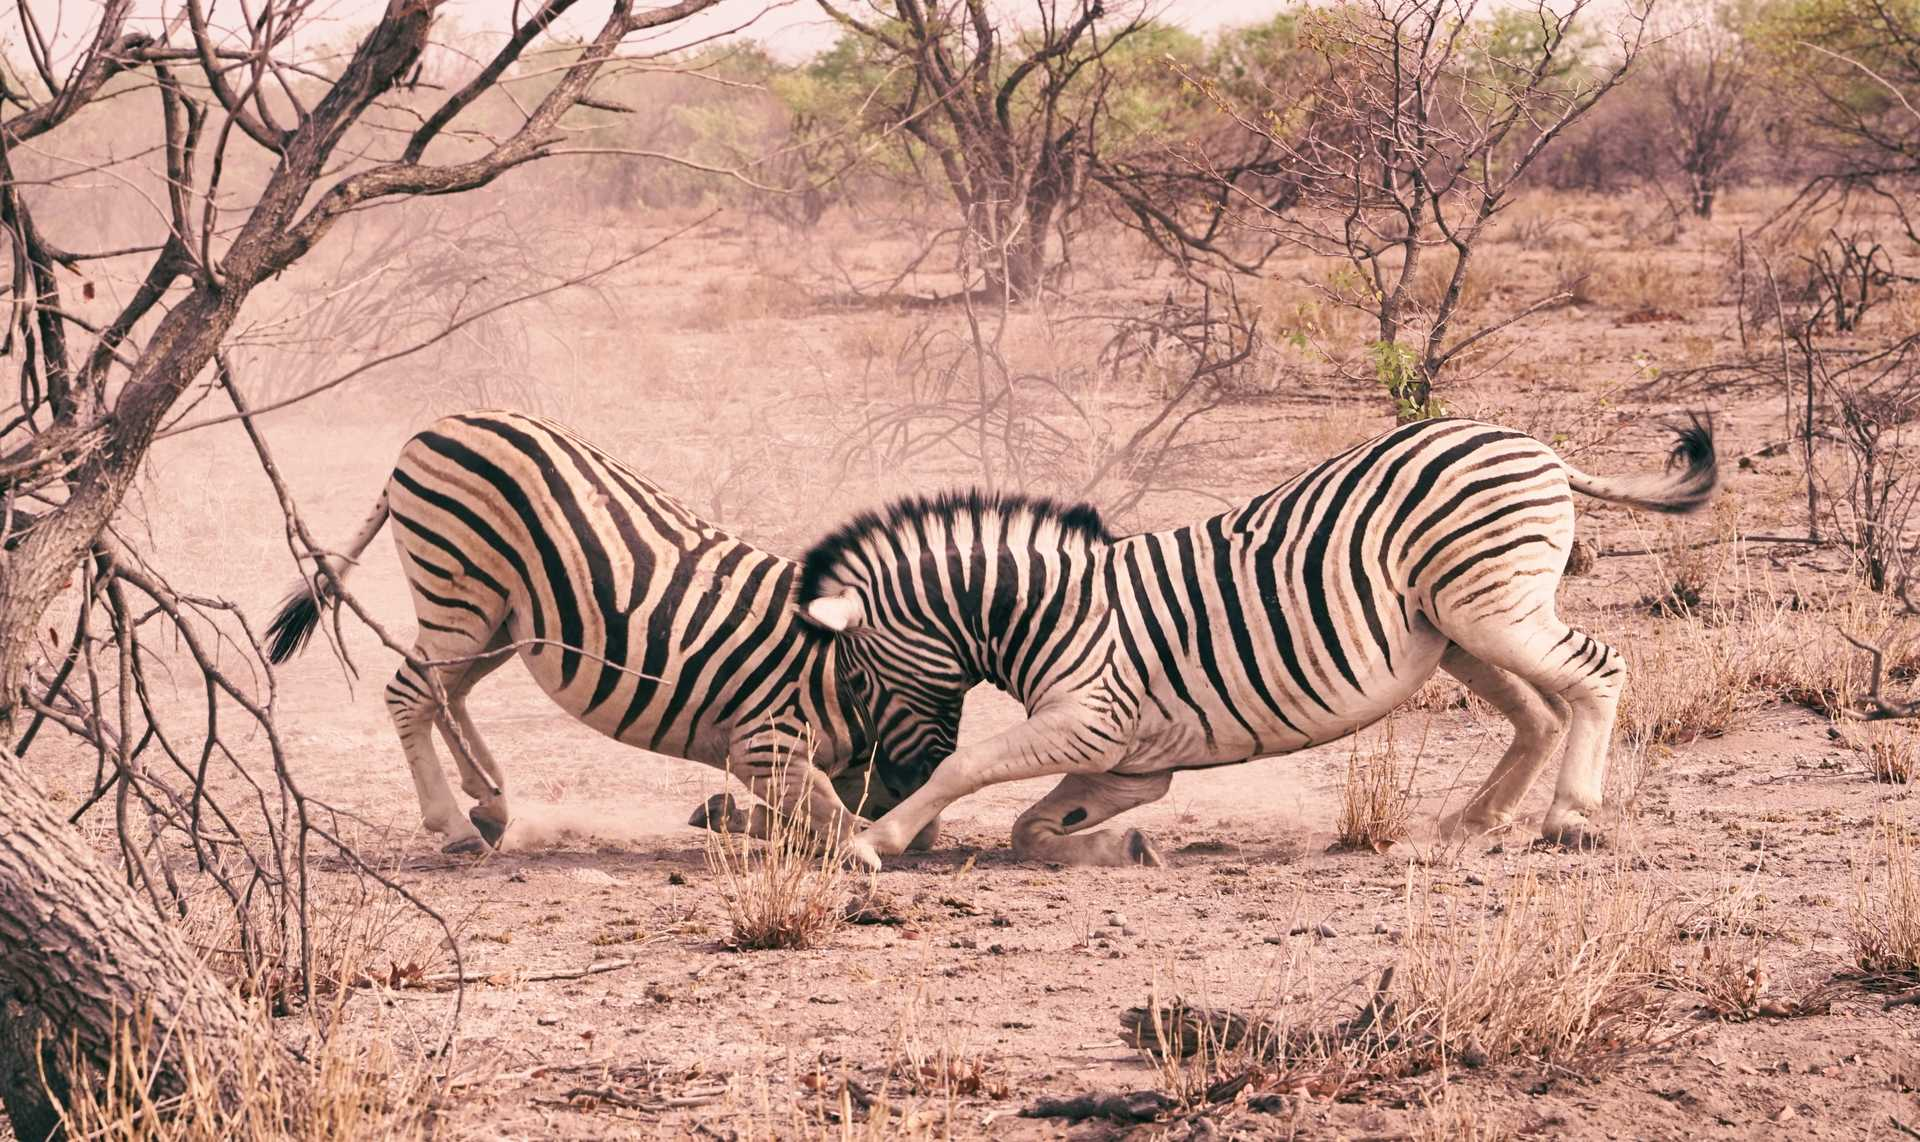 Zebras getting into a fight